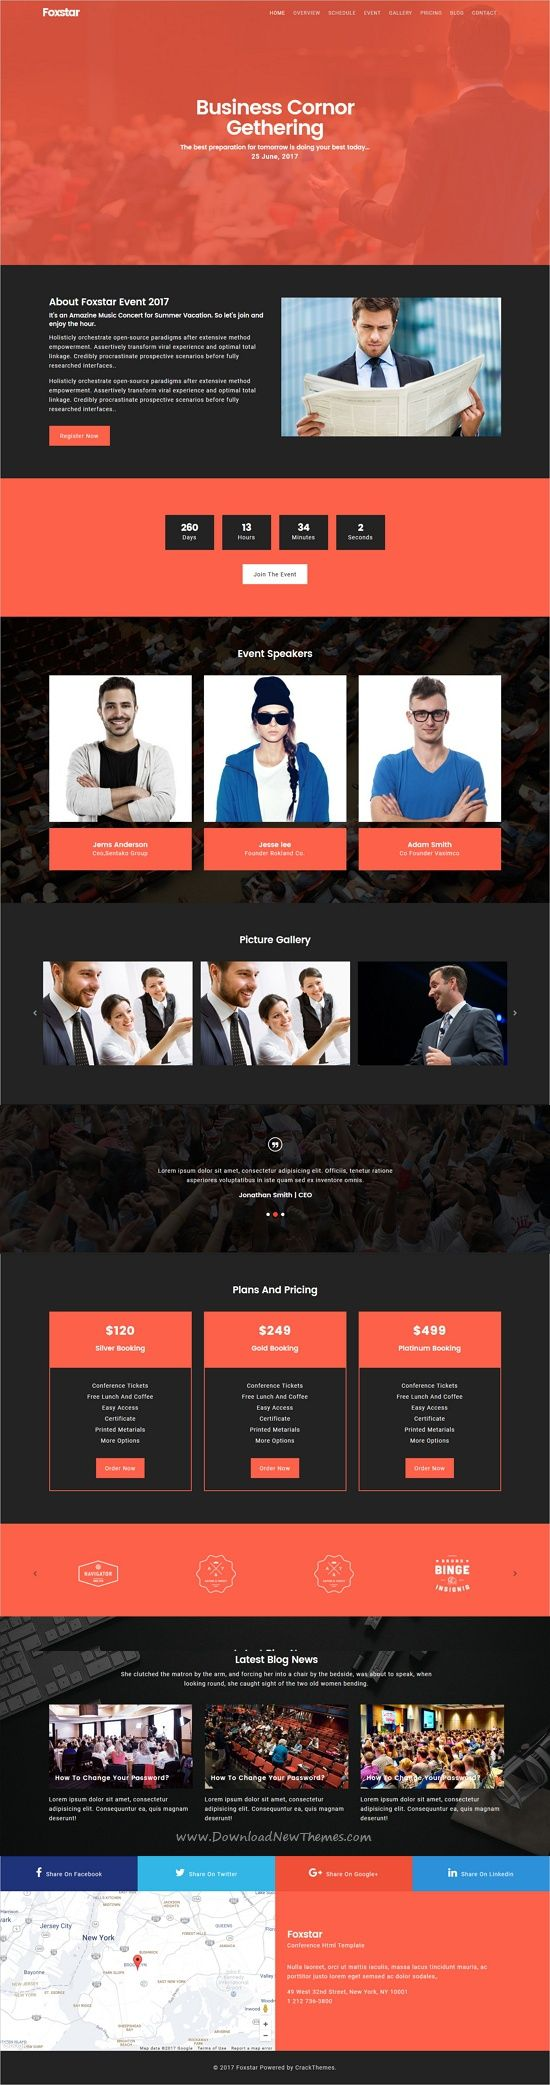 Foxstar is clean & professional design responsive #HTML bootstrap template for #events #conference stunning website with 50+ niche homepage layouts download now➩ https://themeforest.net/item/foxstar-multipurpose-landing-page-pack-with-page-builder/19761185?ref=Datasata